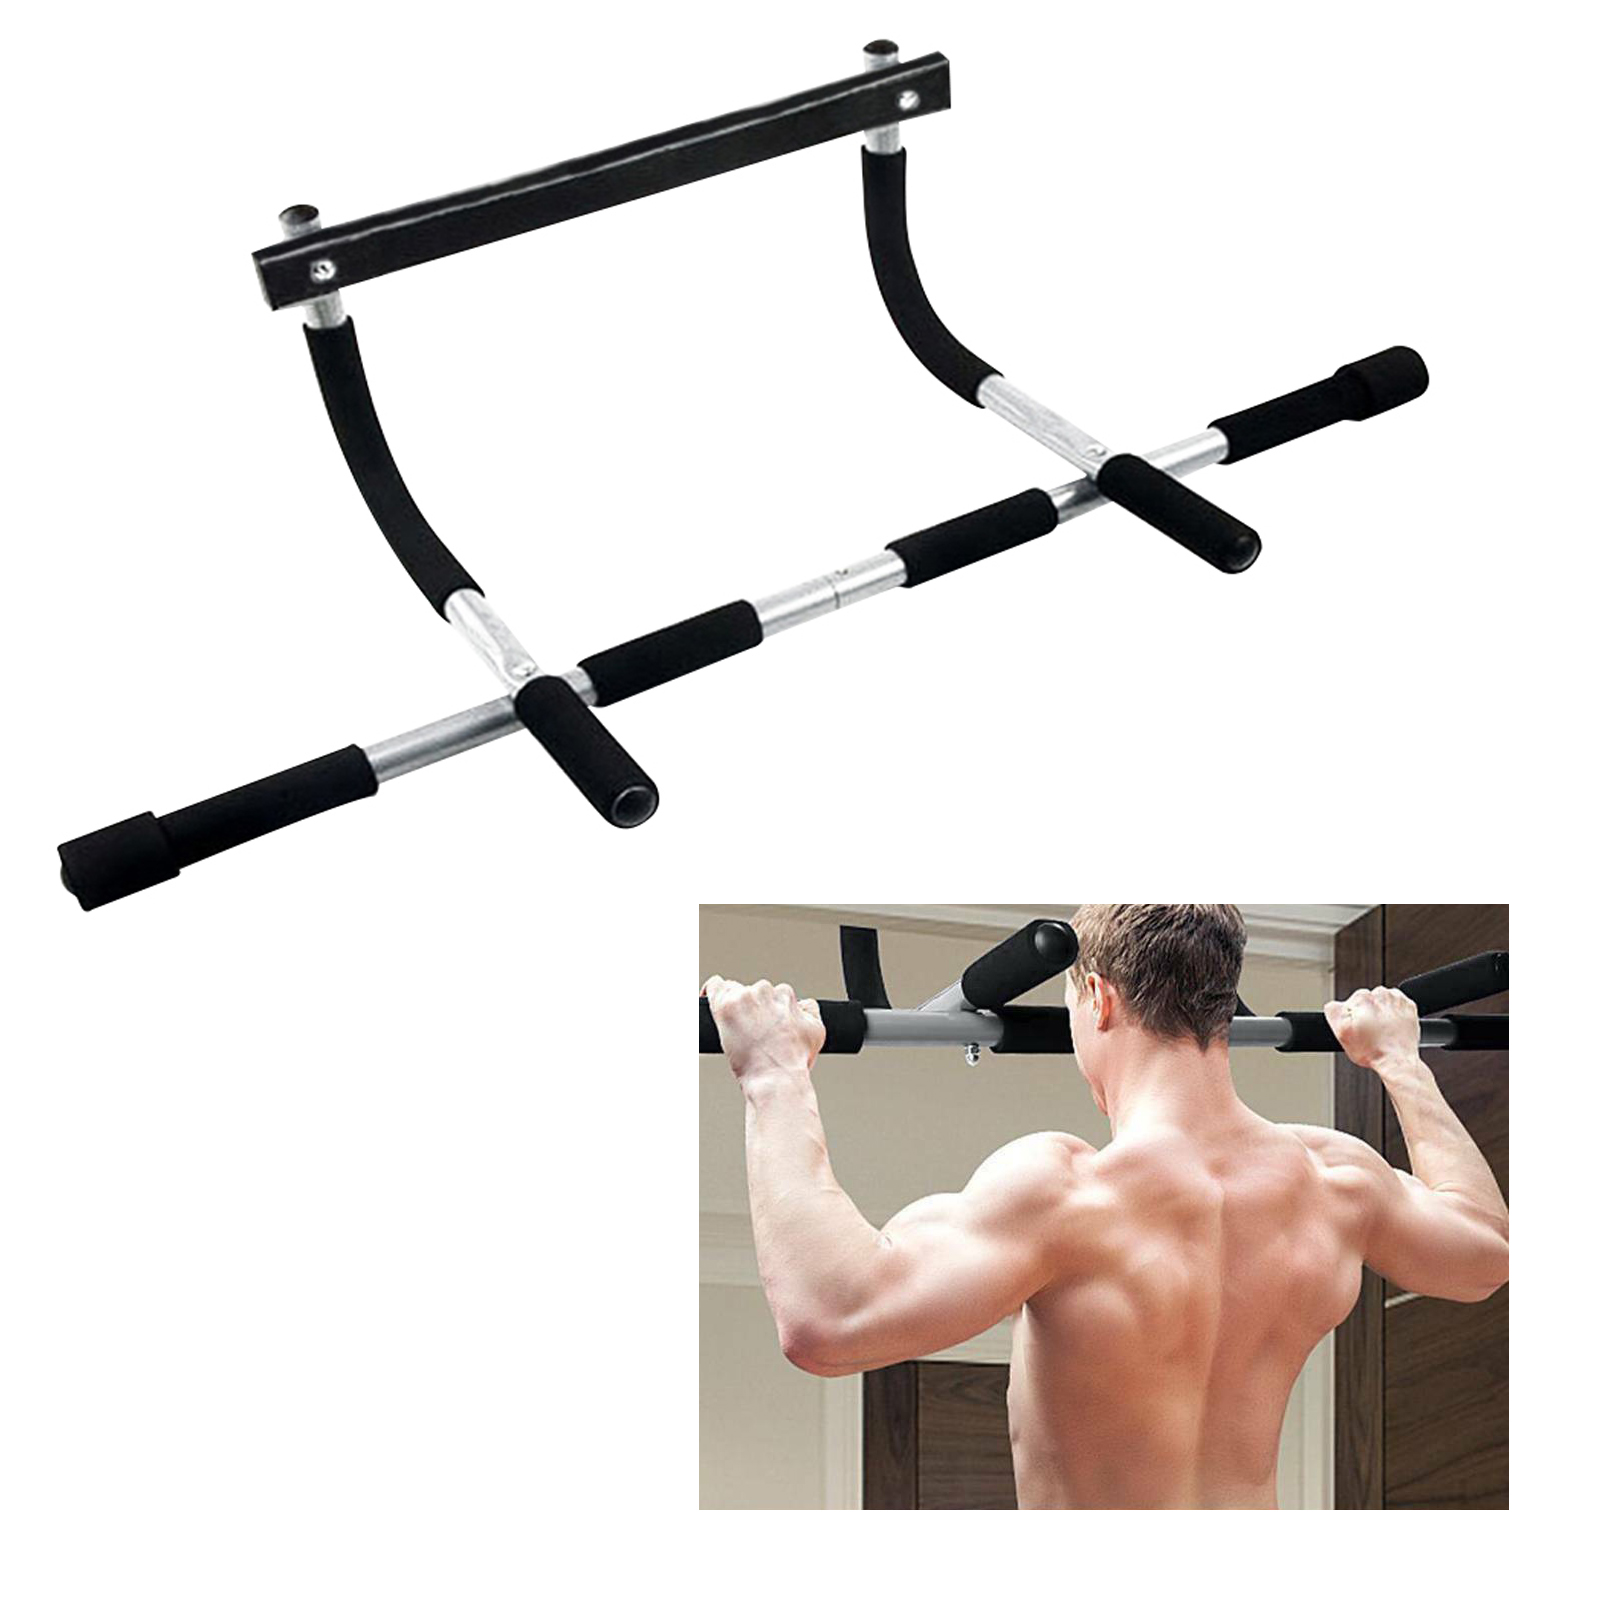 Indoor Fitness Horizontal Bar Workout Bar Chin-Up Pull-Up Bar Crossfit Sport Gym Equipment Home Fitness Equipment image